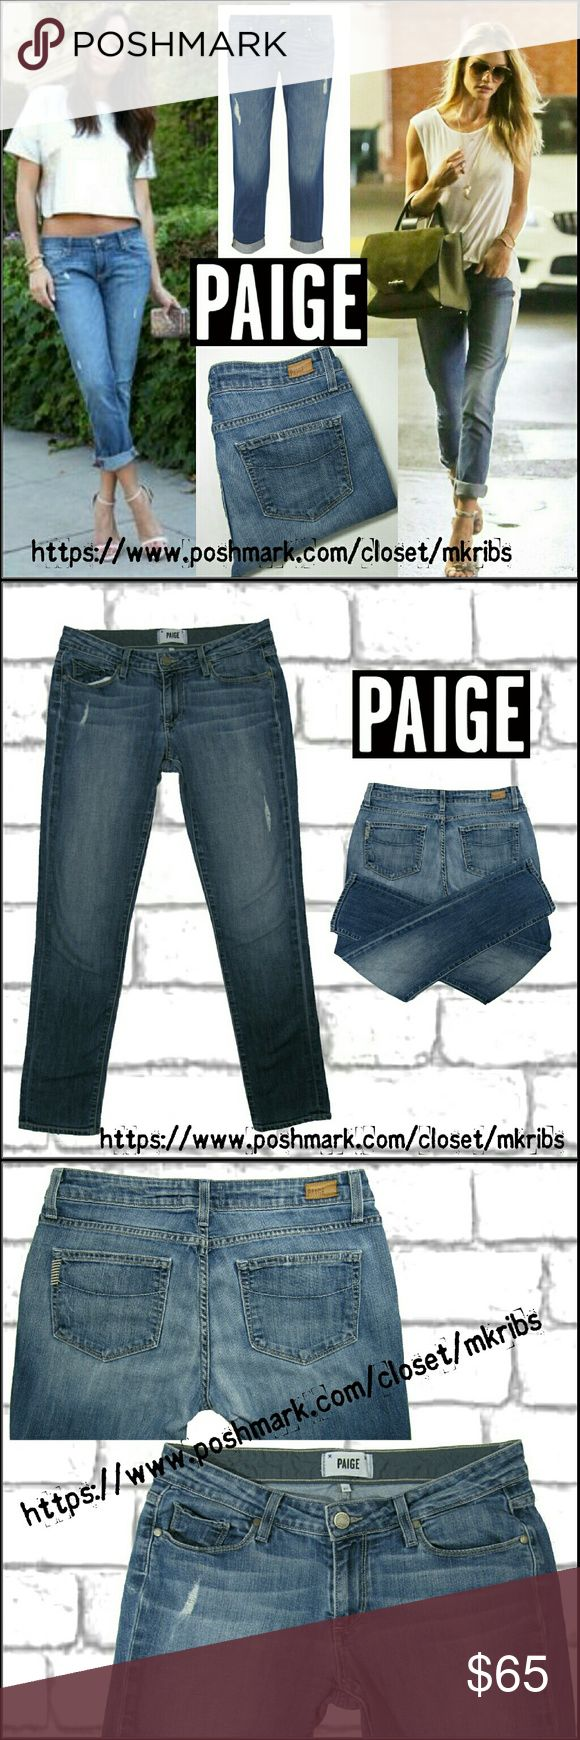 Paige Jimmy Jimmy skinny jean 27 Paige Denim, Jimmy Jimmy skinny crops. Destroyed, distressed, wash.  Soft denim with stretch. Size 27. All photos in pictures 2, 3, and 4 are of the actual item for sale and taken by me. NO TRADES PLEASE! OFFERS WELCOME THROUGH OFFER FEATURE ONLY PLEASE! Paige Jeans Jeans